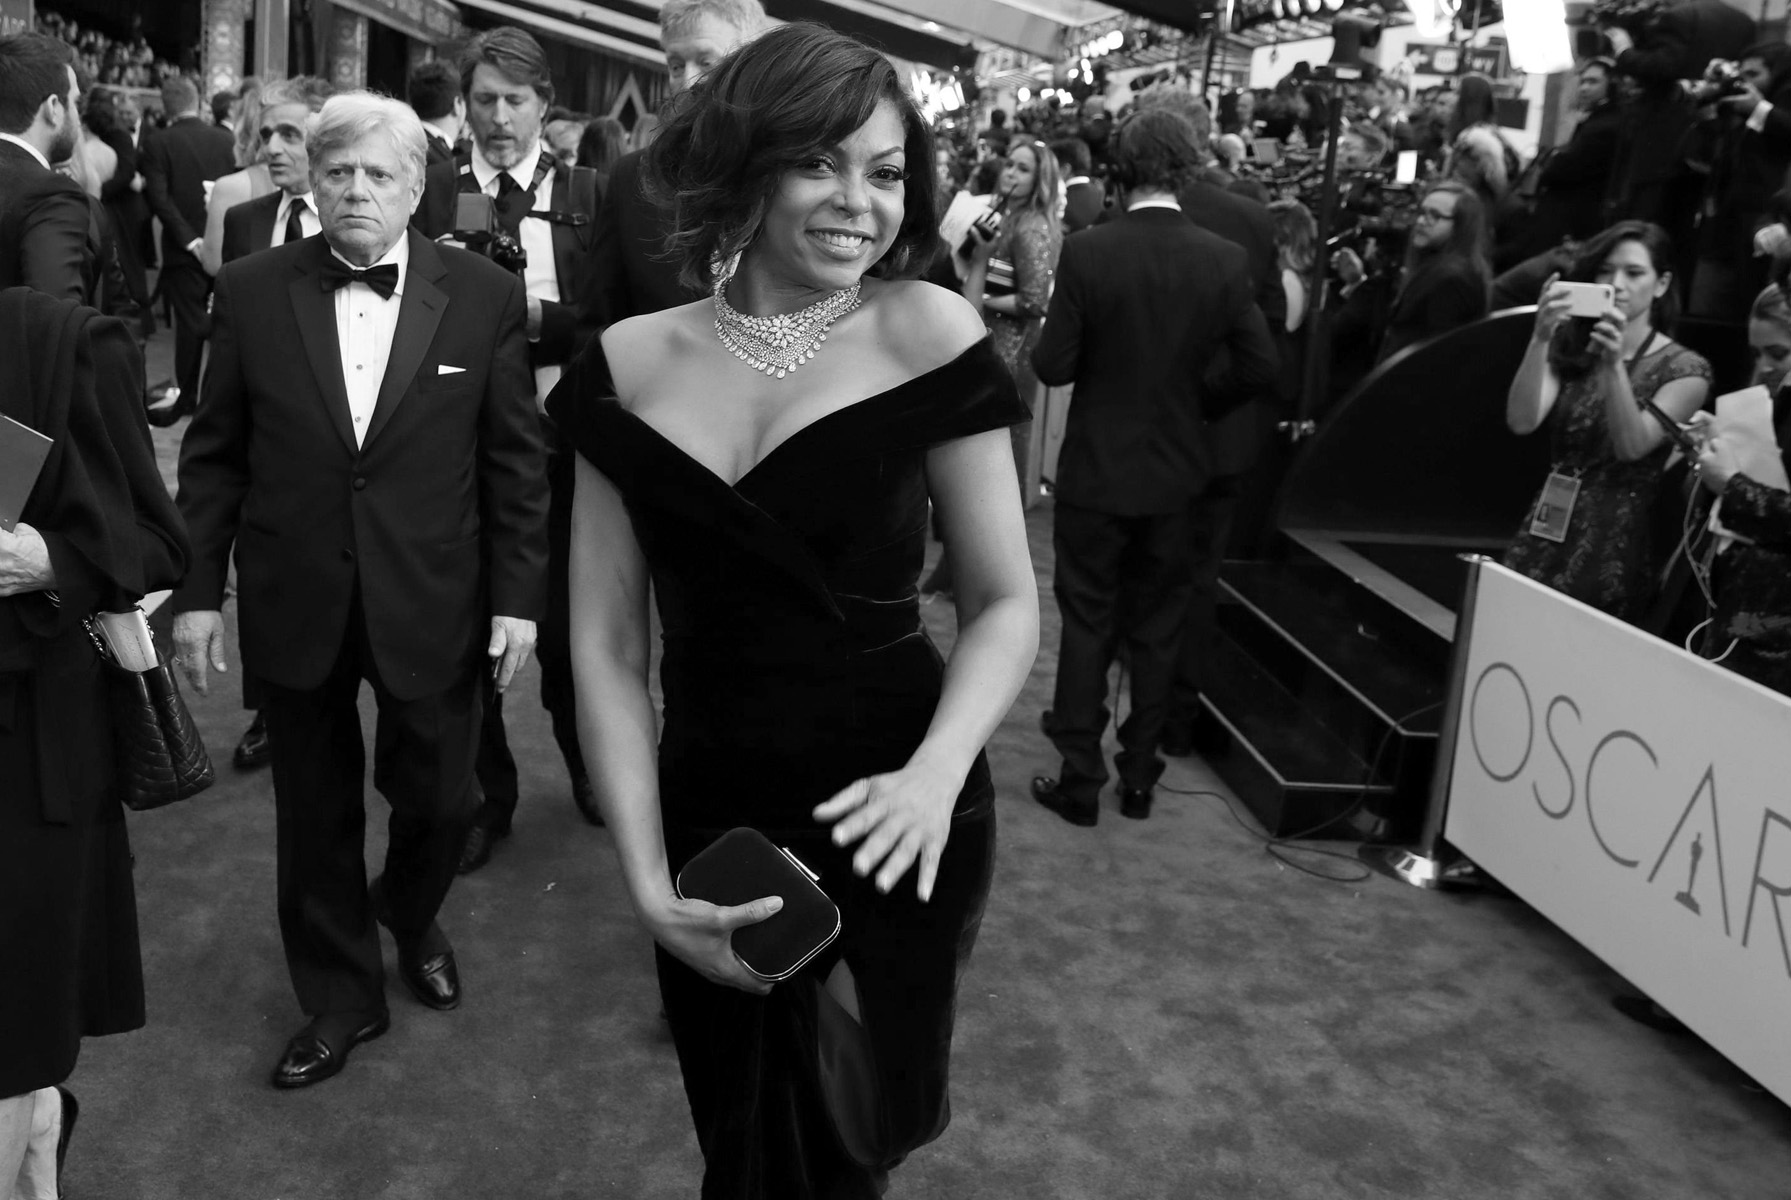 Taraji P. Henson arrives at the Oscars on Sunday, Feb. 26, 2017, at the Dolby Theatre in Los Angeles. (Photo by Matt Sayles/Invision/AP)